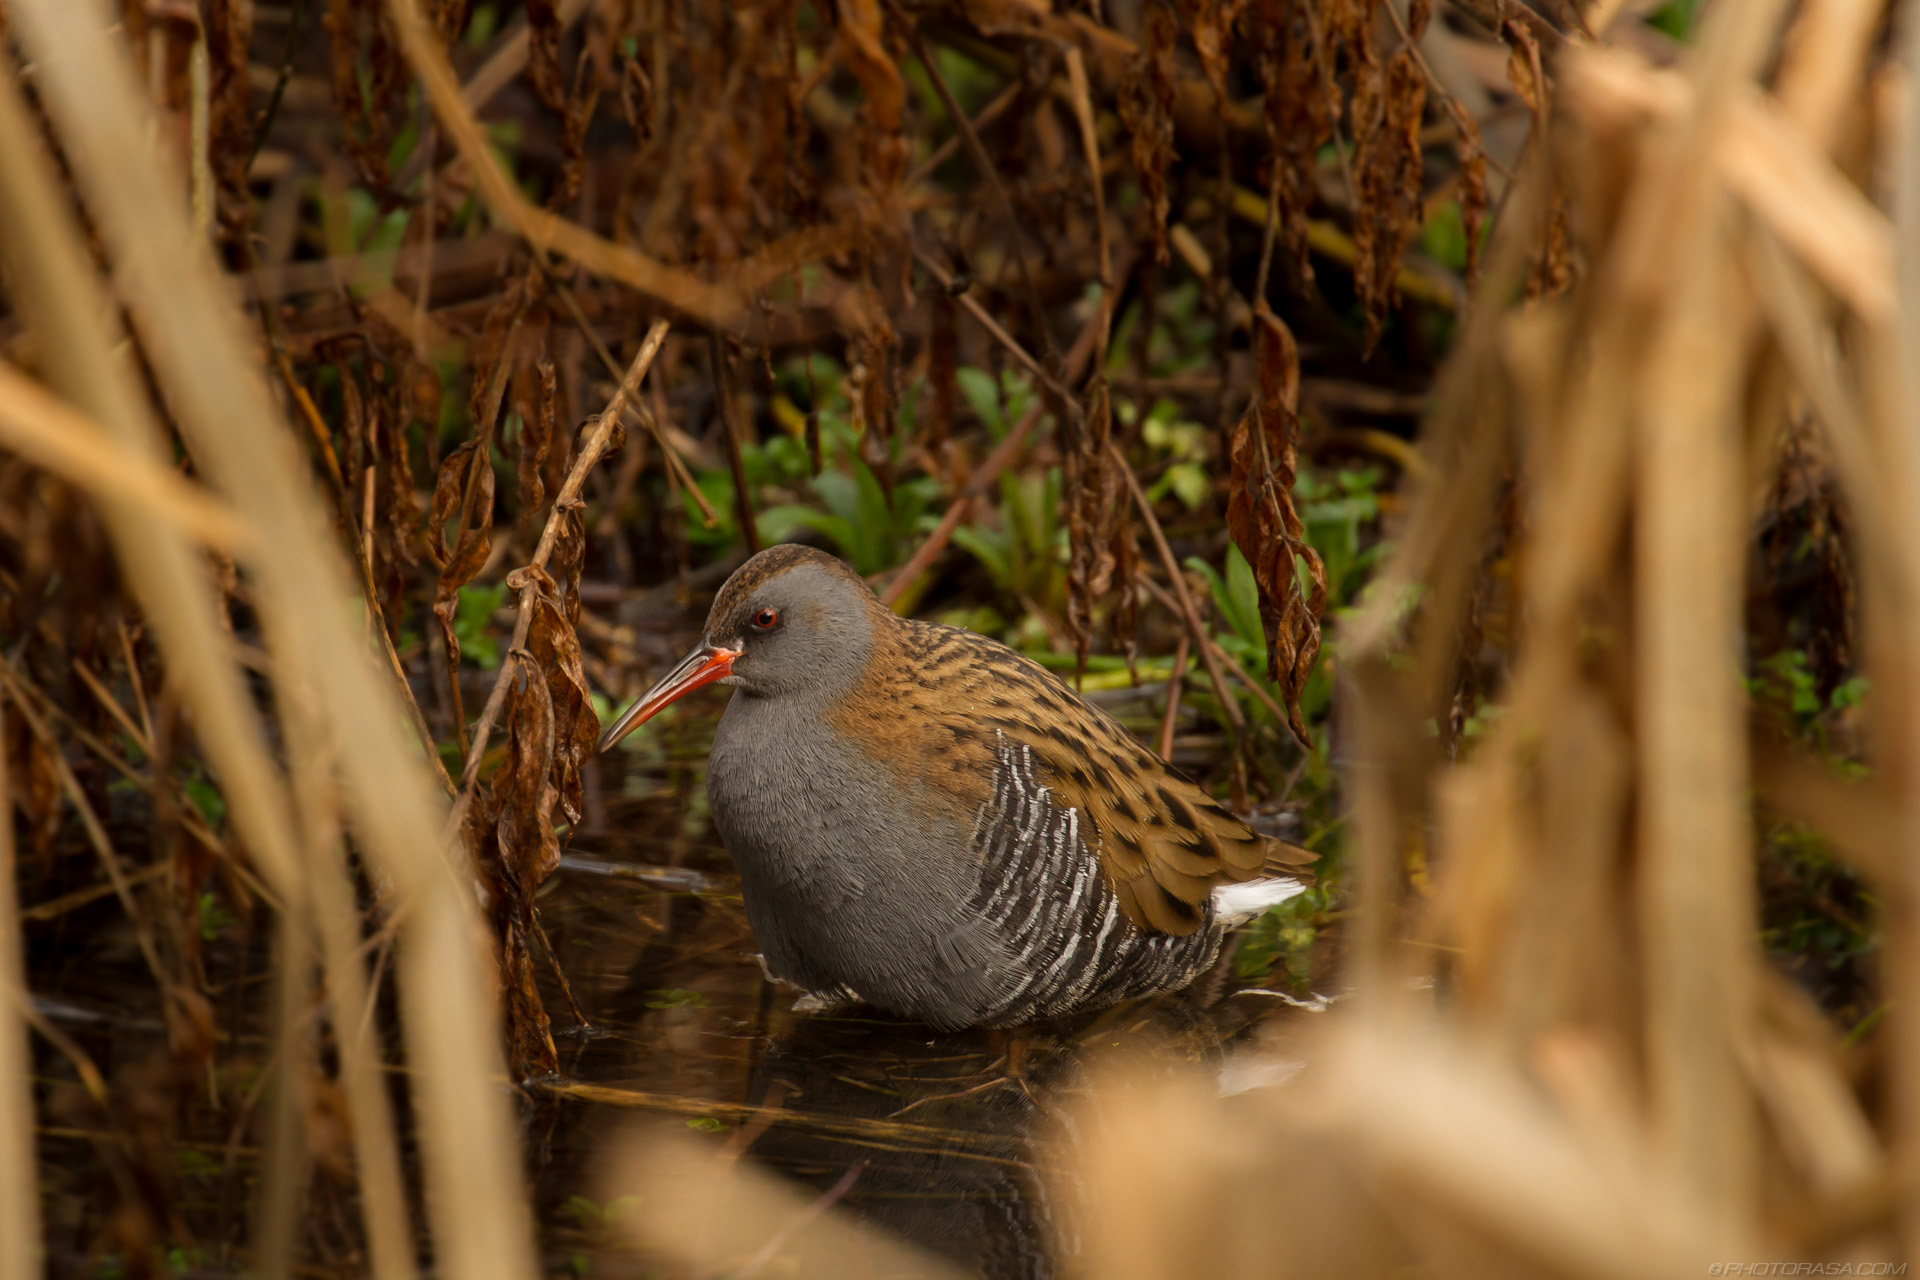 https://photorasa.com/water-rail-by-the-stream/rail-bird-in-the-undergrowth/